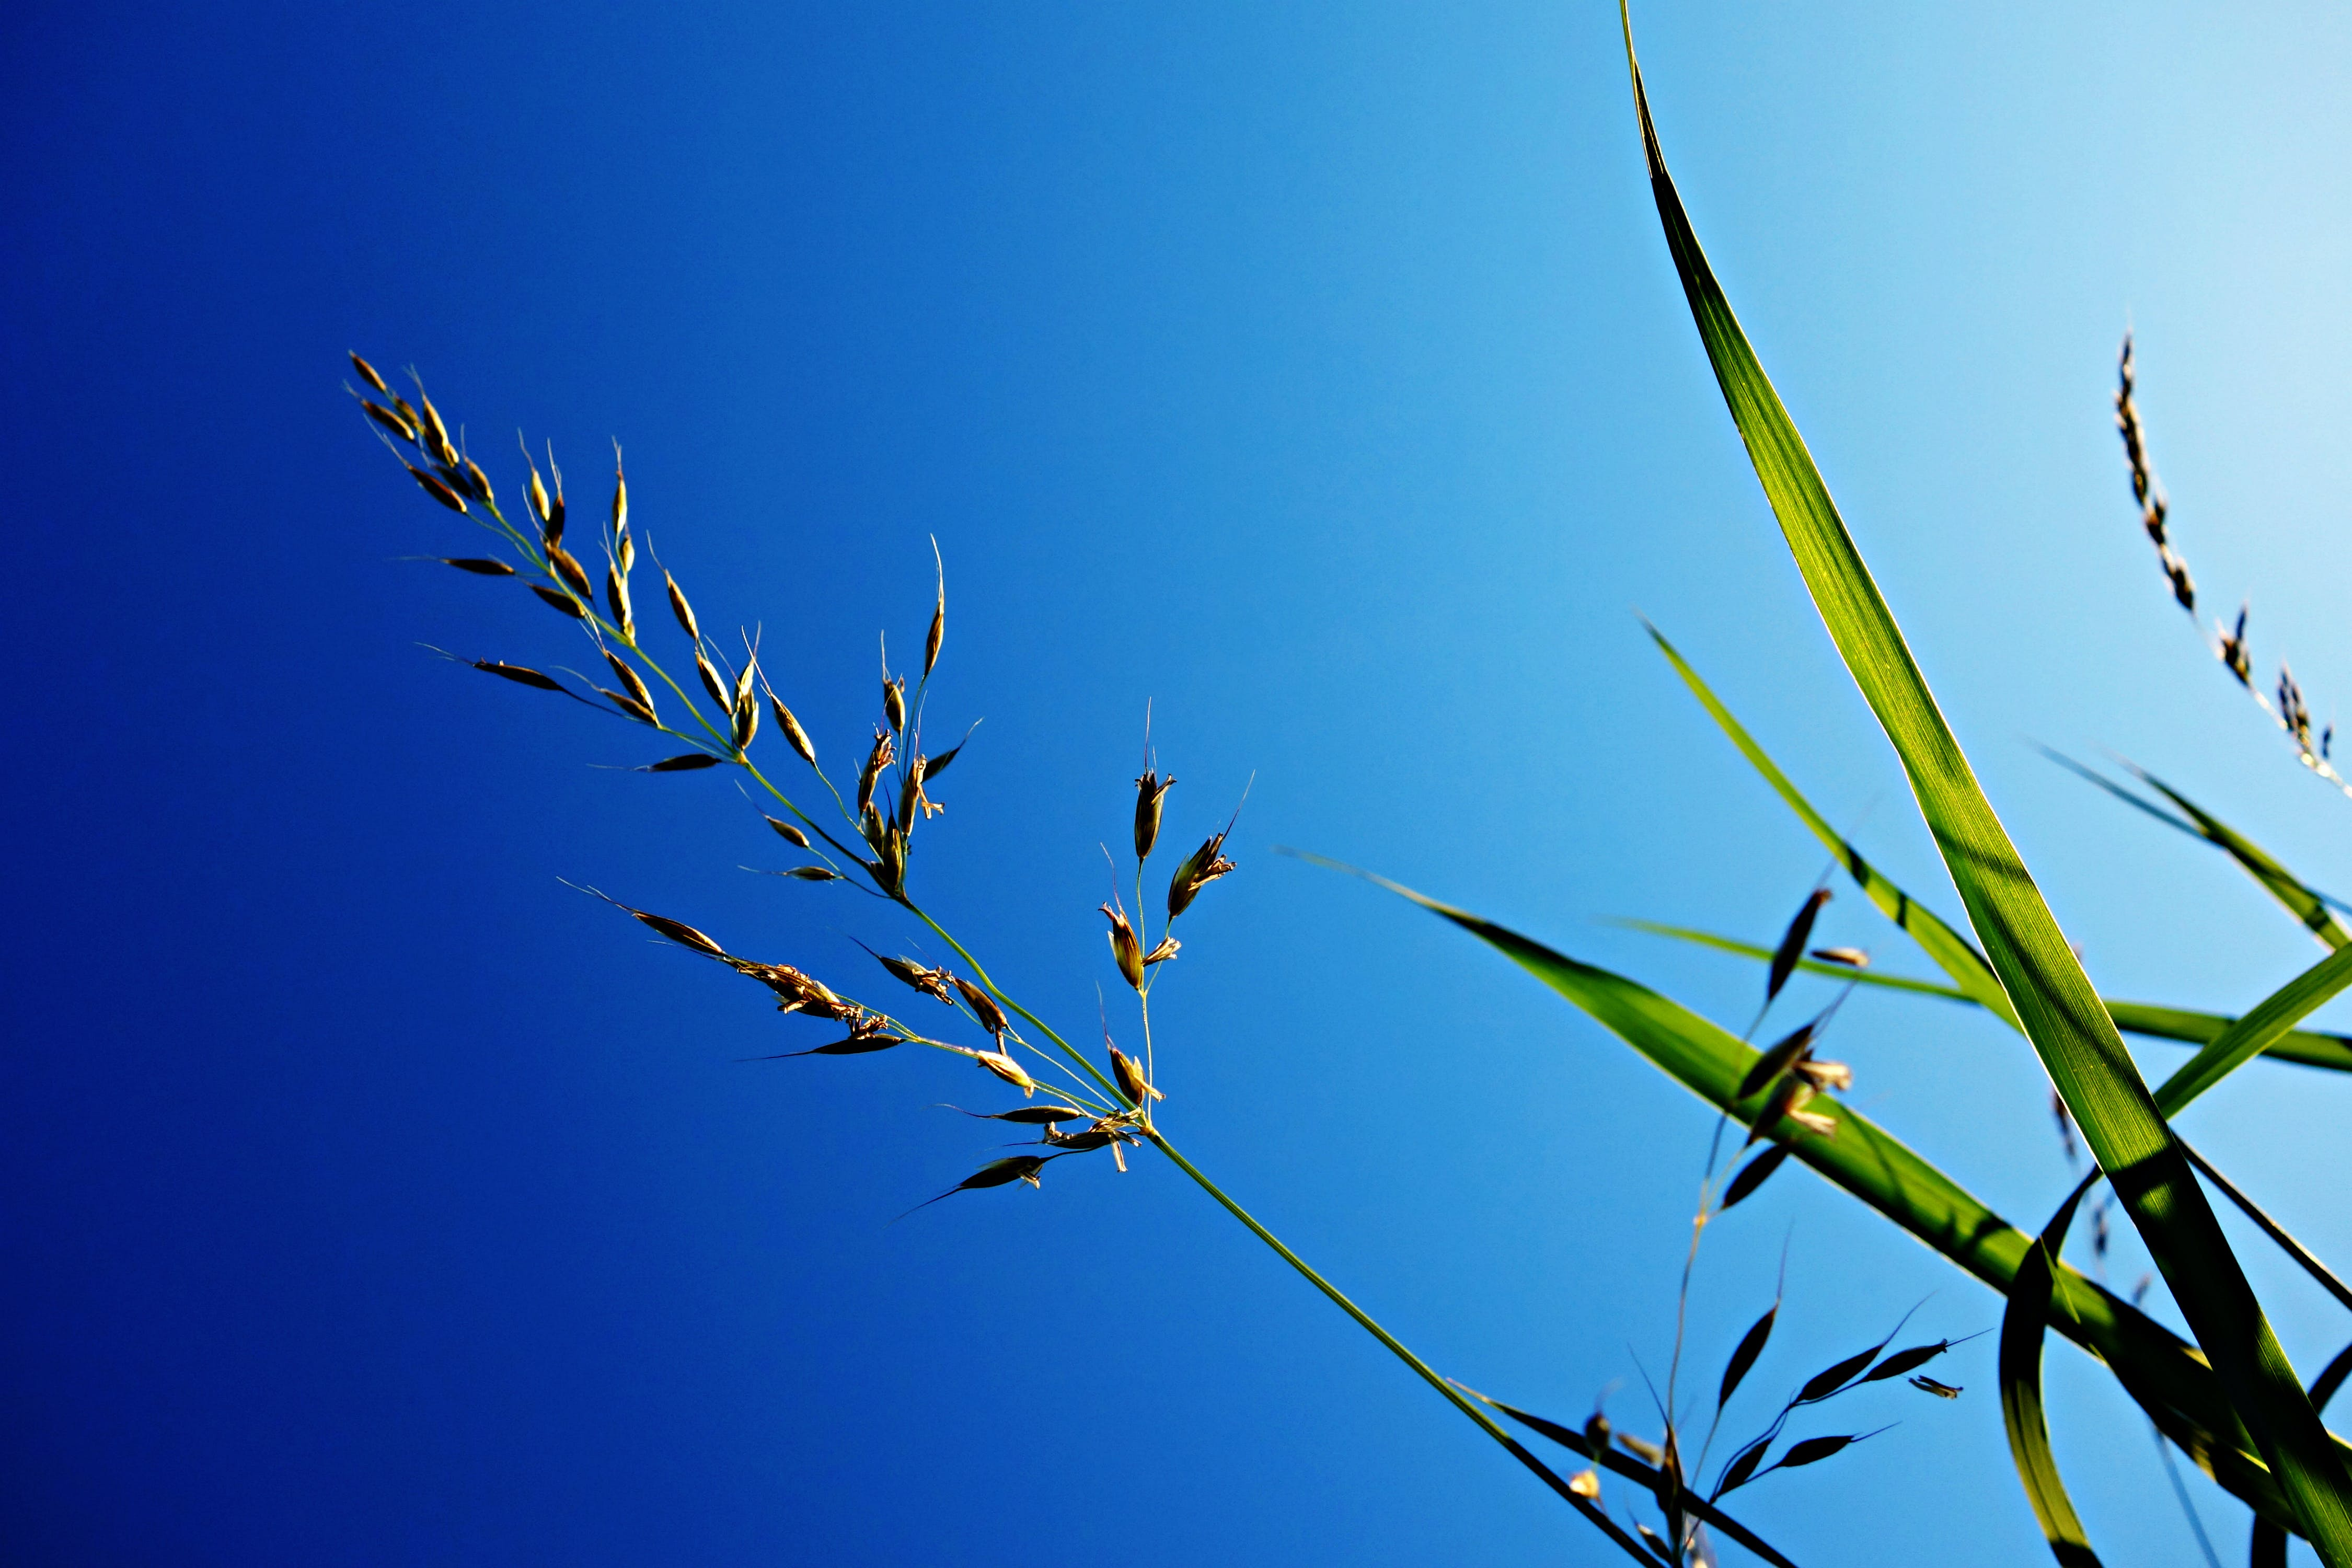 Free stock photo of nature, sky, blue, grass